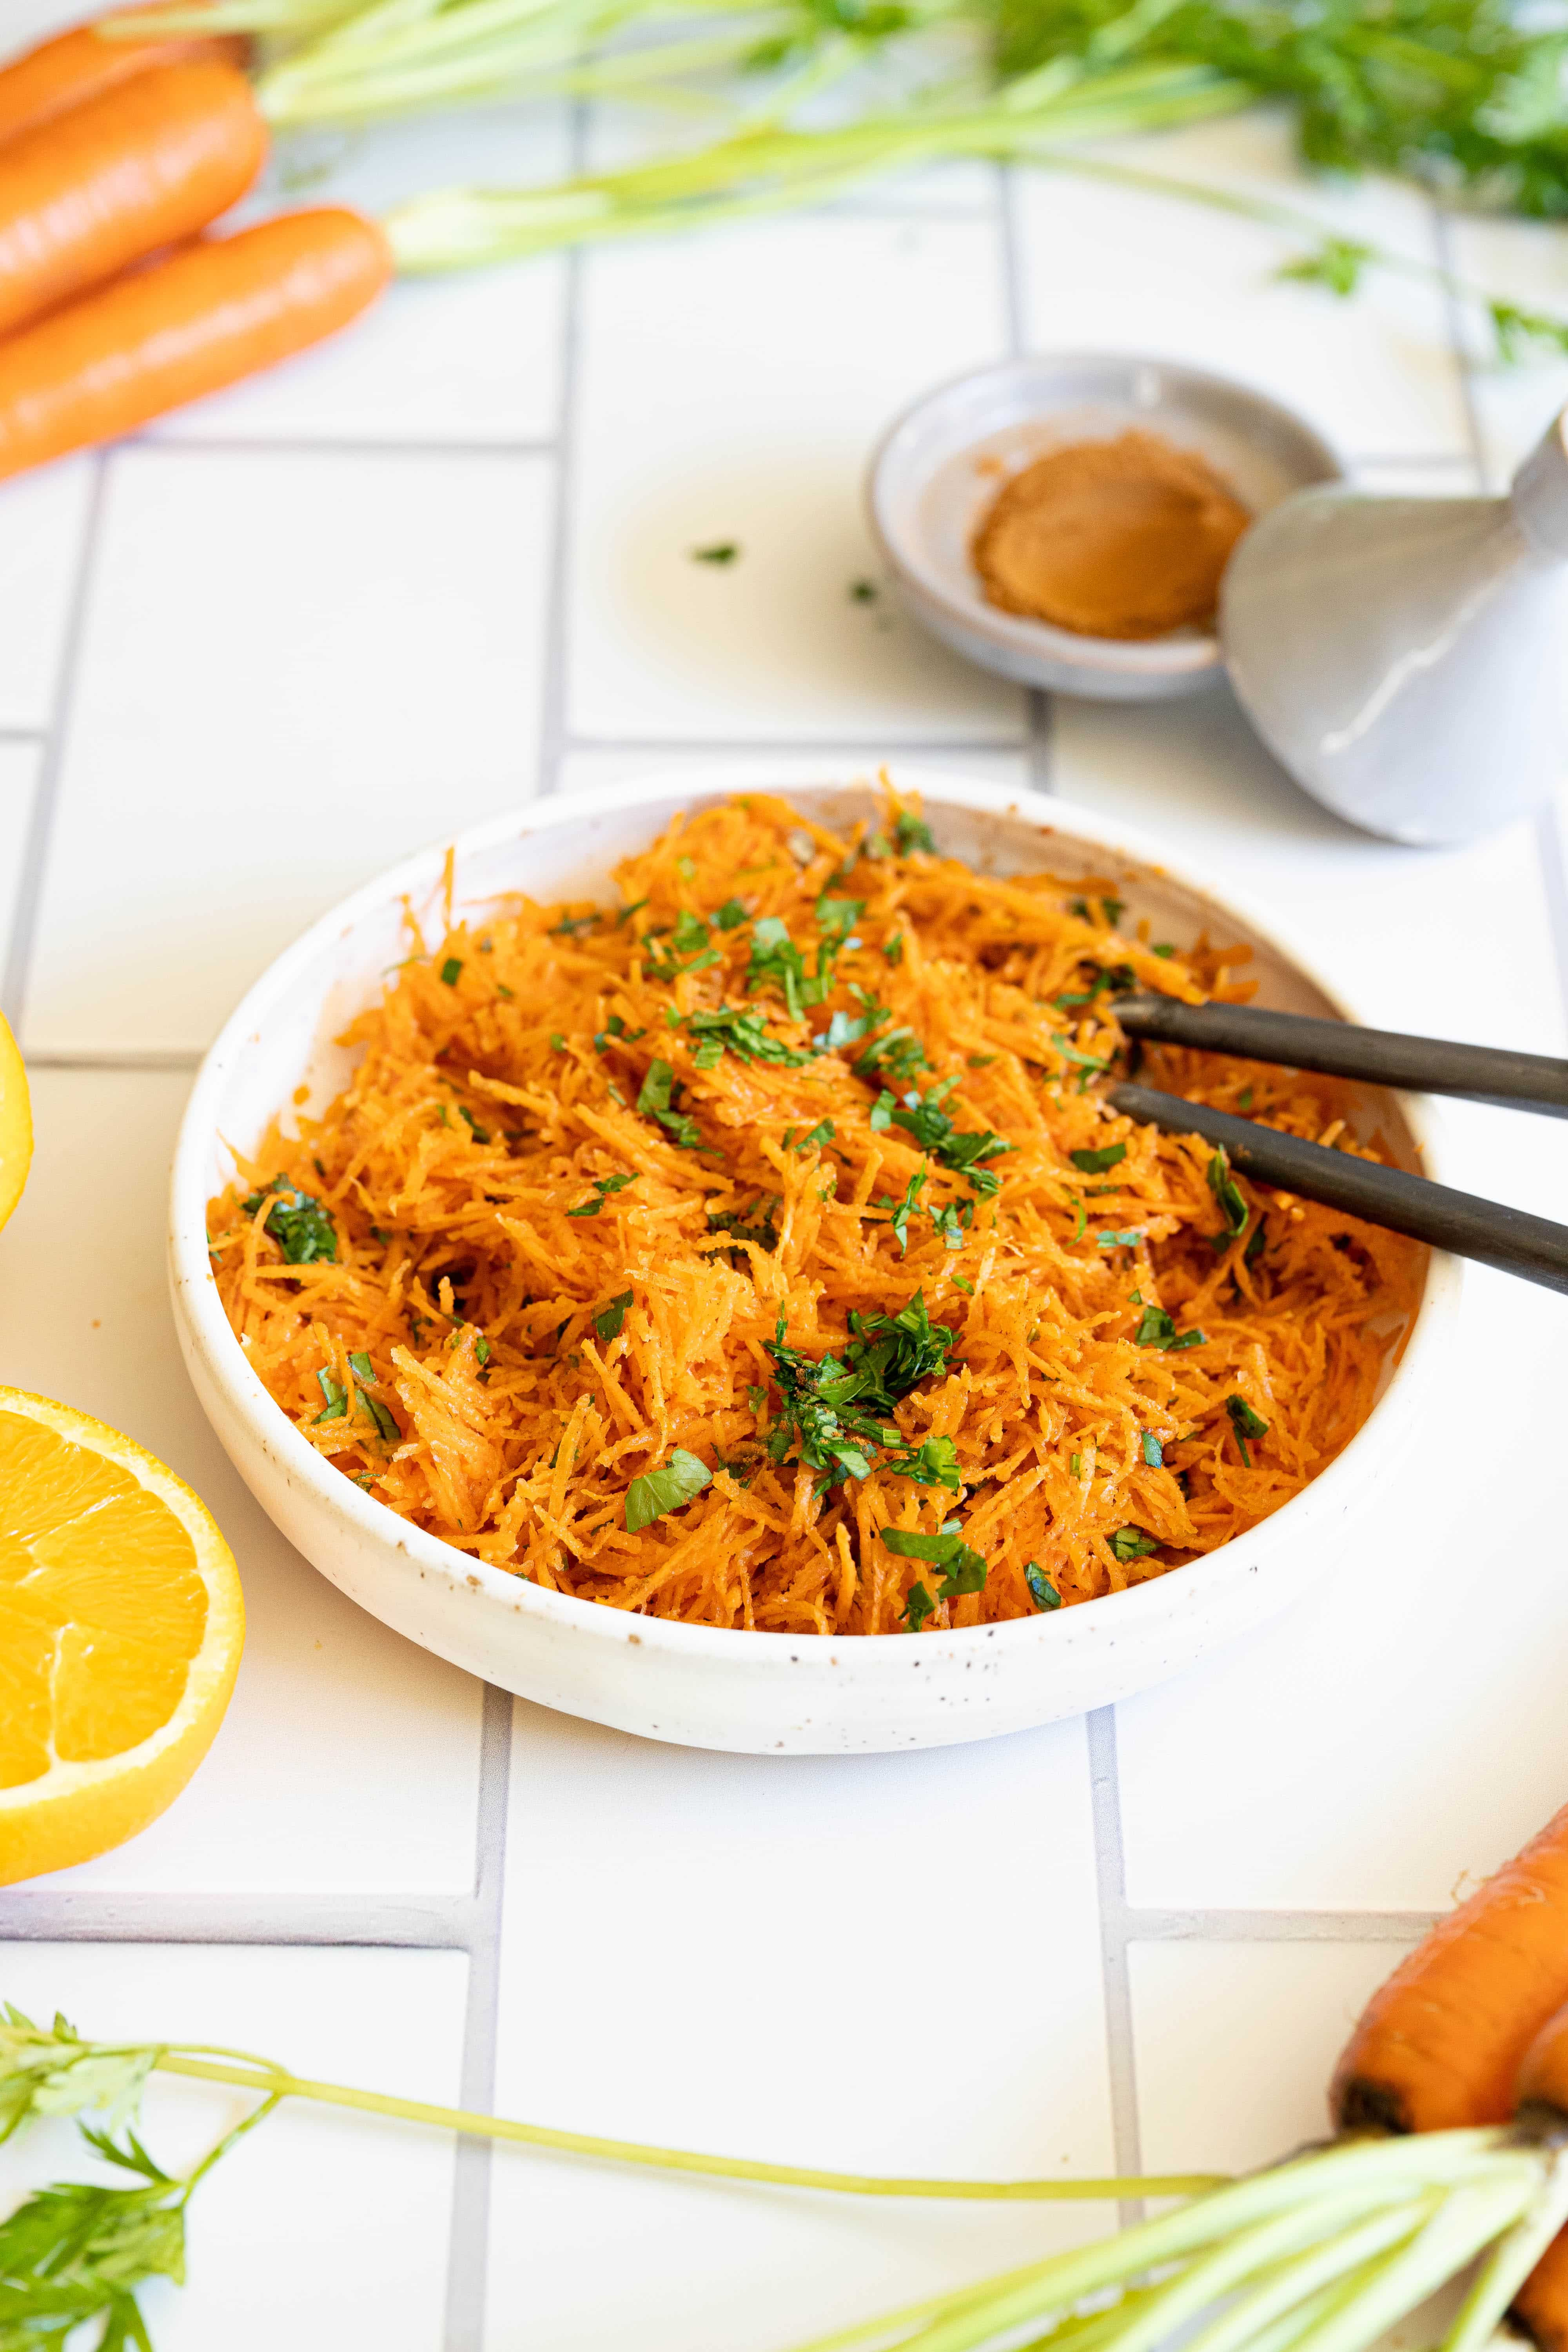 A bowl of Moroccan carrot salad